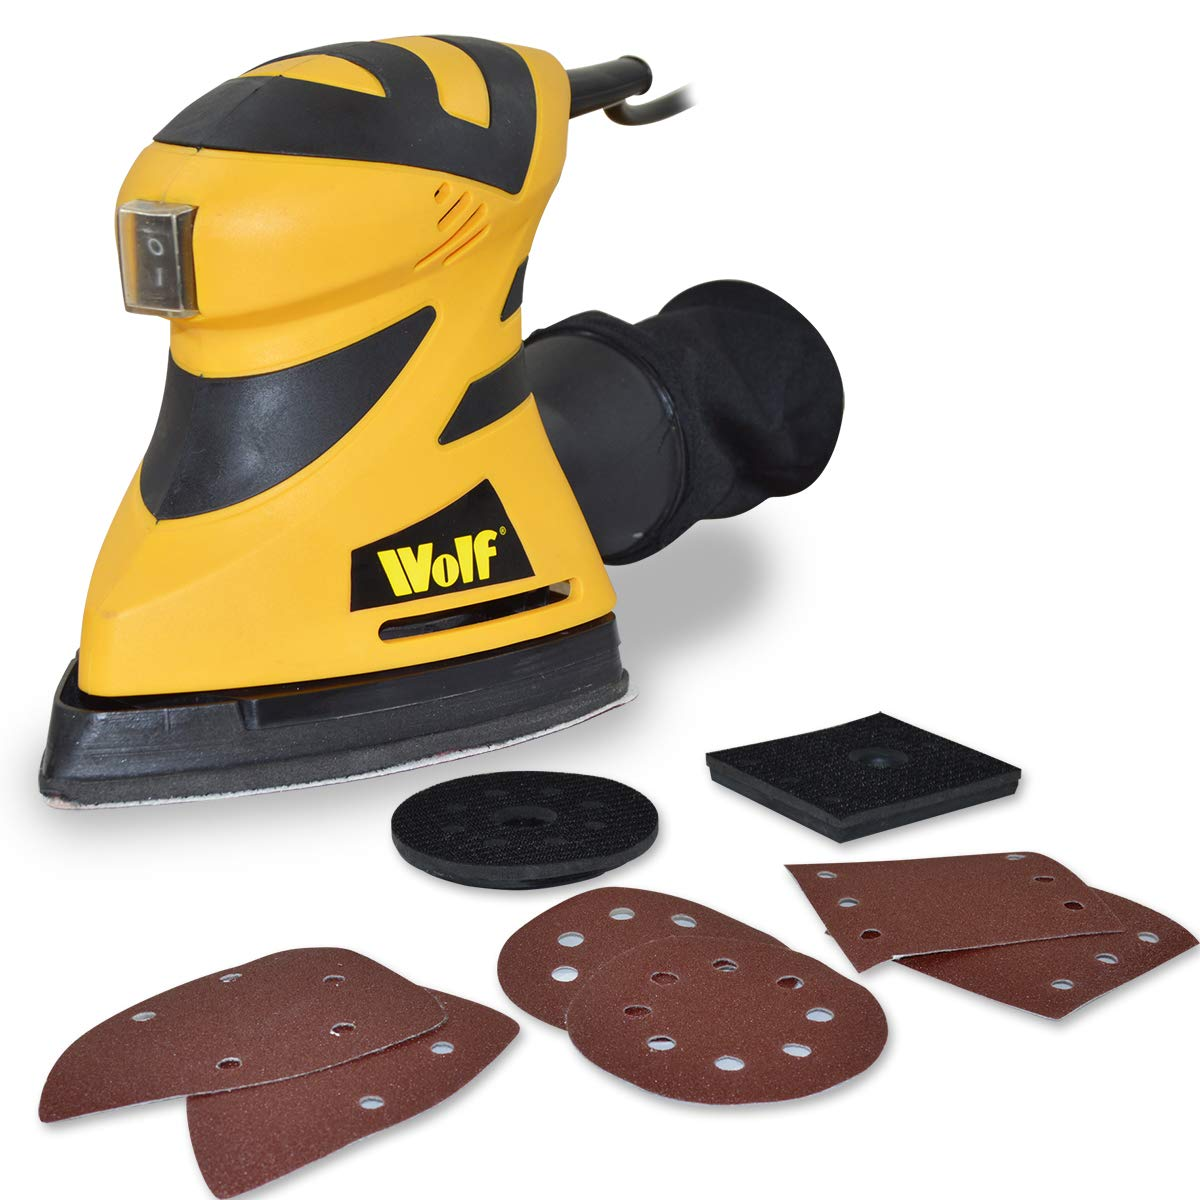 Wolf 180 Watt 240v 3 in 1 Multi Function Sander - Simple Pad Change For Detail Sander or Dual Action Rotary Sander or 1/4 Sheet Sander - Includes 6 Sanding Sheets, 3 Base Plates and Dust Bag